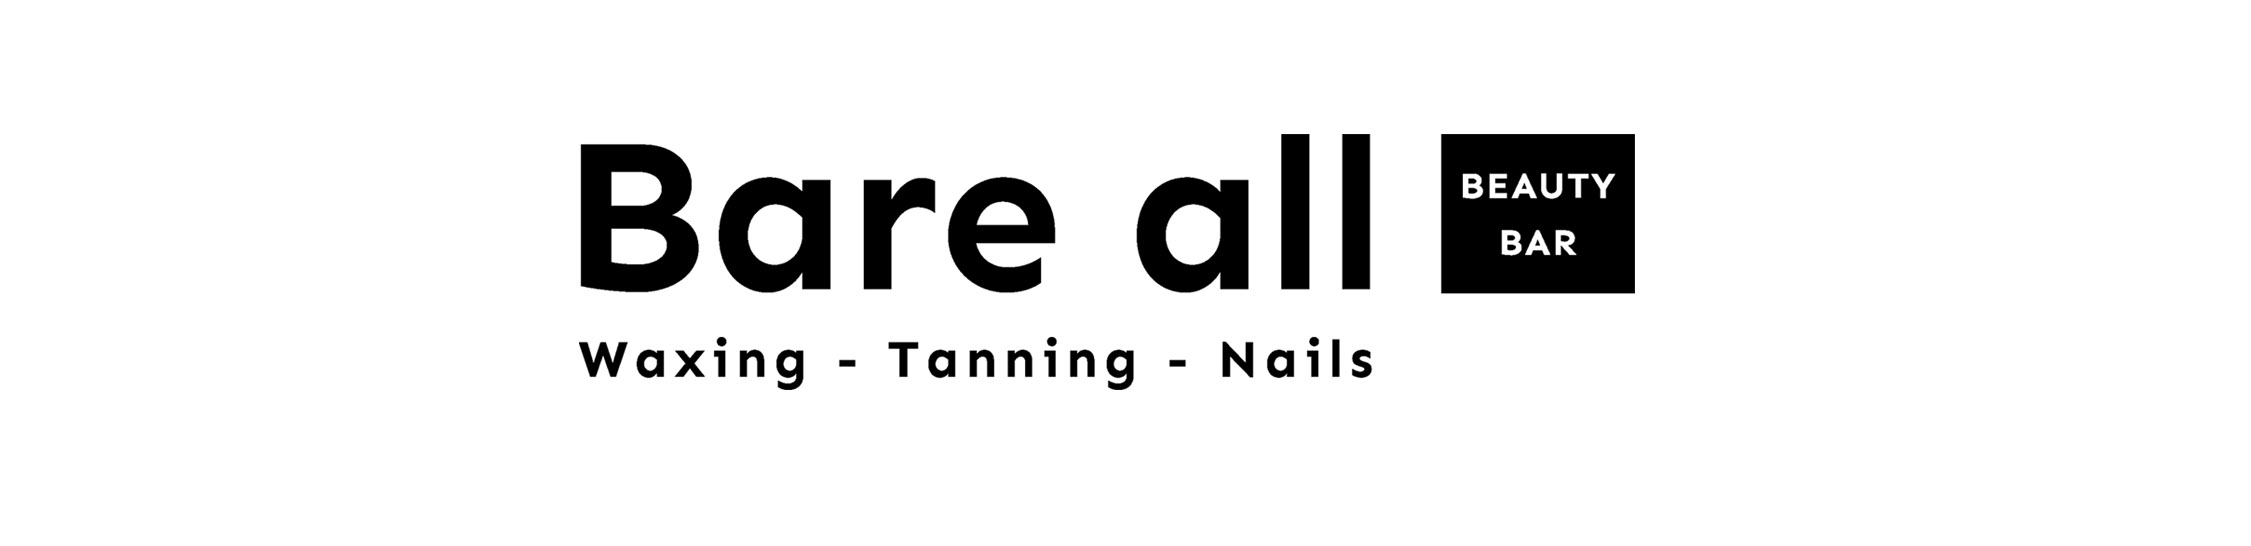 Bare All Beauty Bar Waxing Tanning Amp Nails Chelmsford